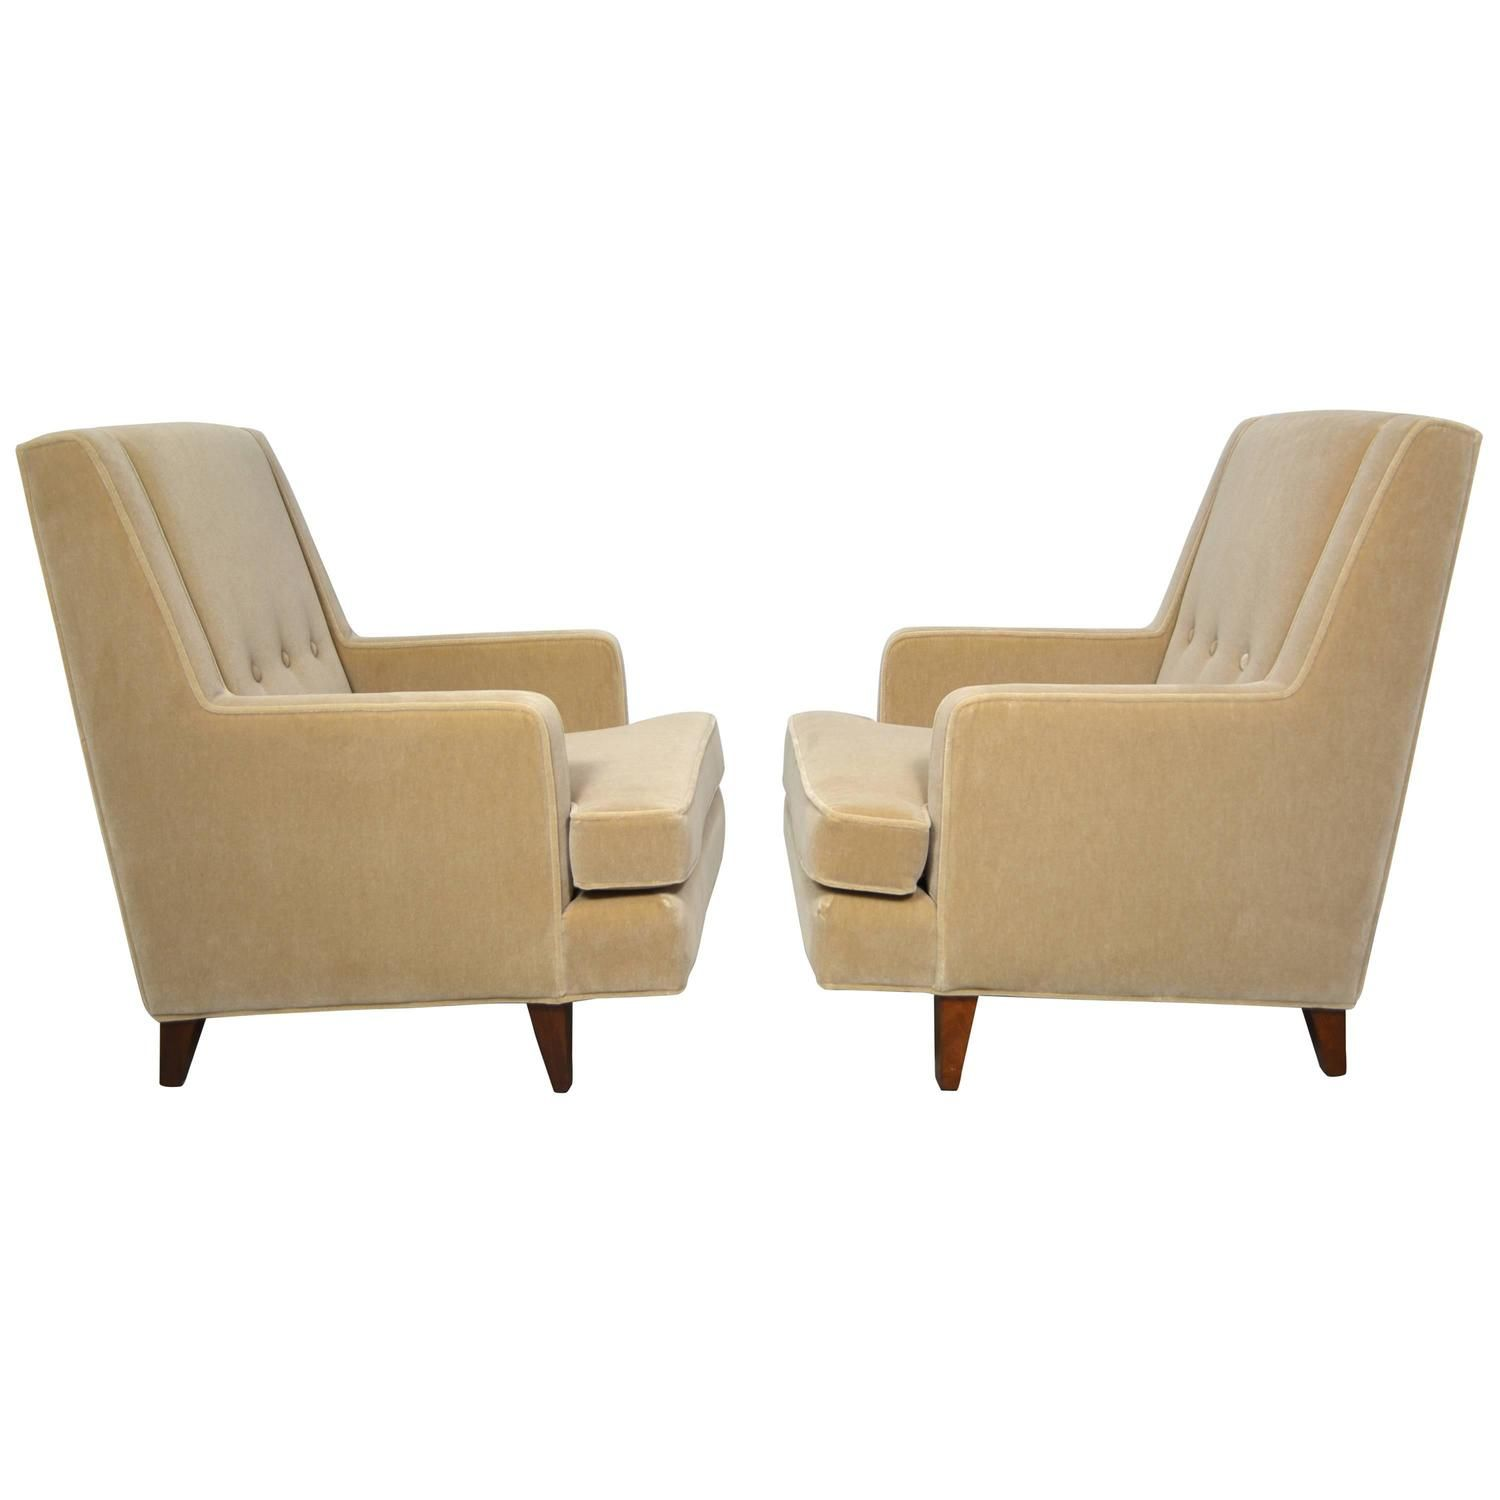 Chairs For Tall Man Edward Wormley Pair Of